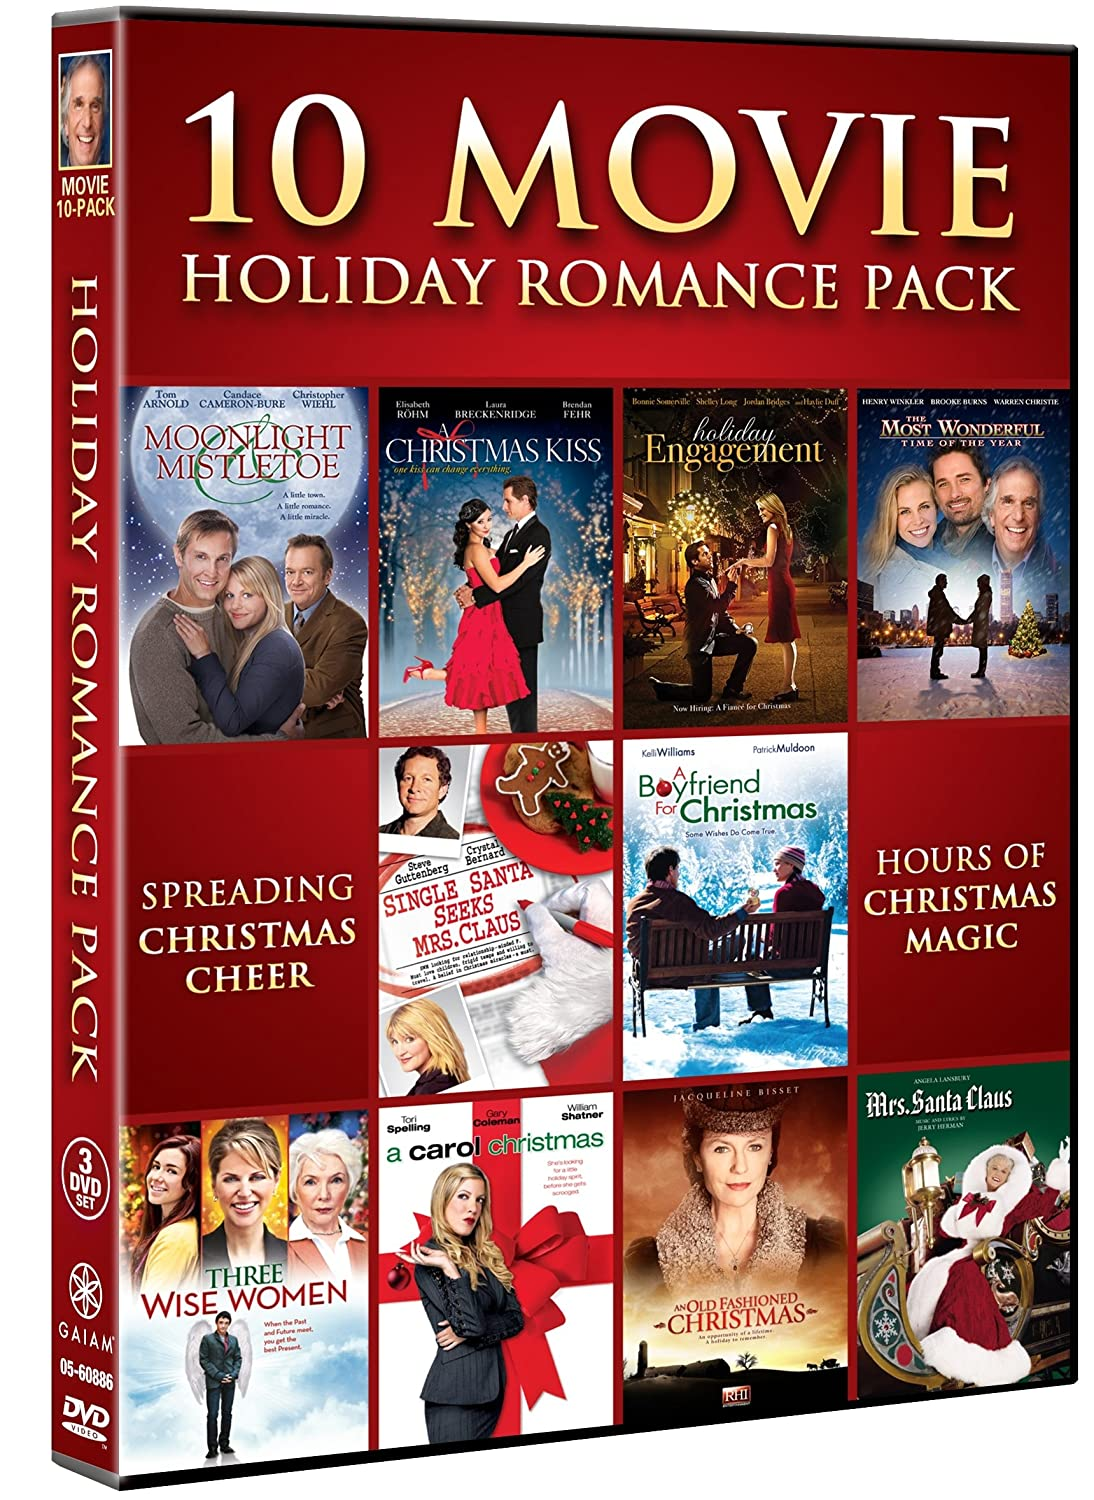 amazoncom holiday romance collection movie 10 pack various movies tv - Country Christmas Movie